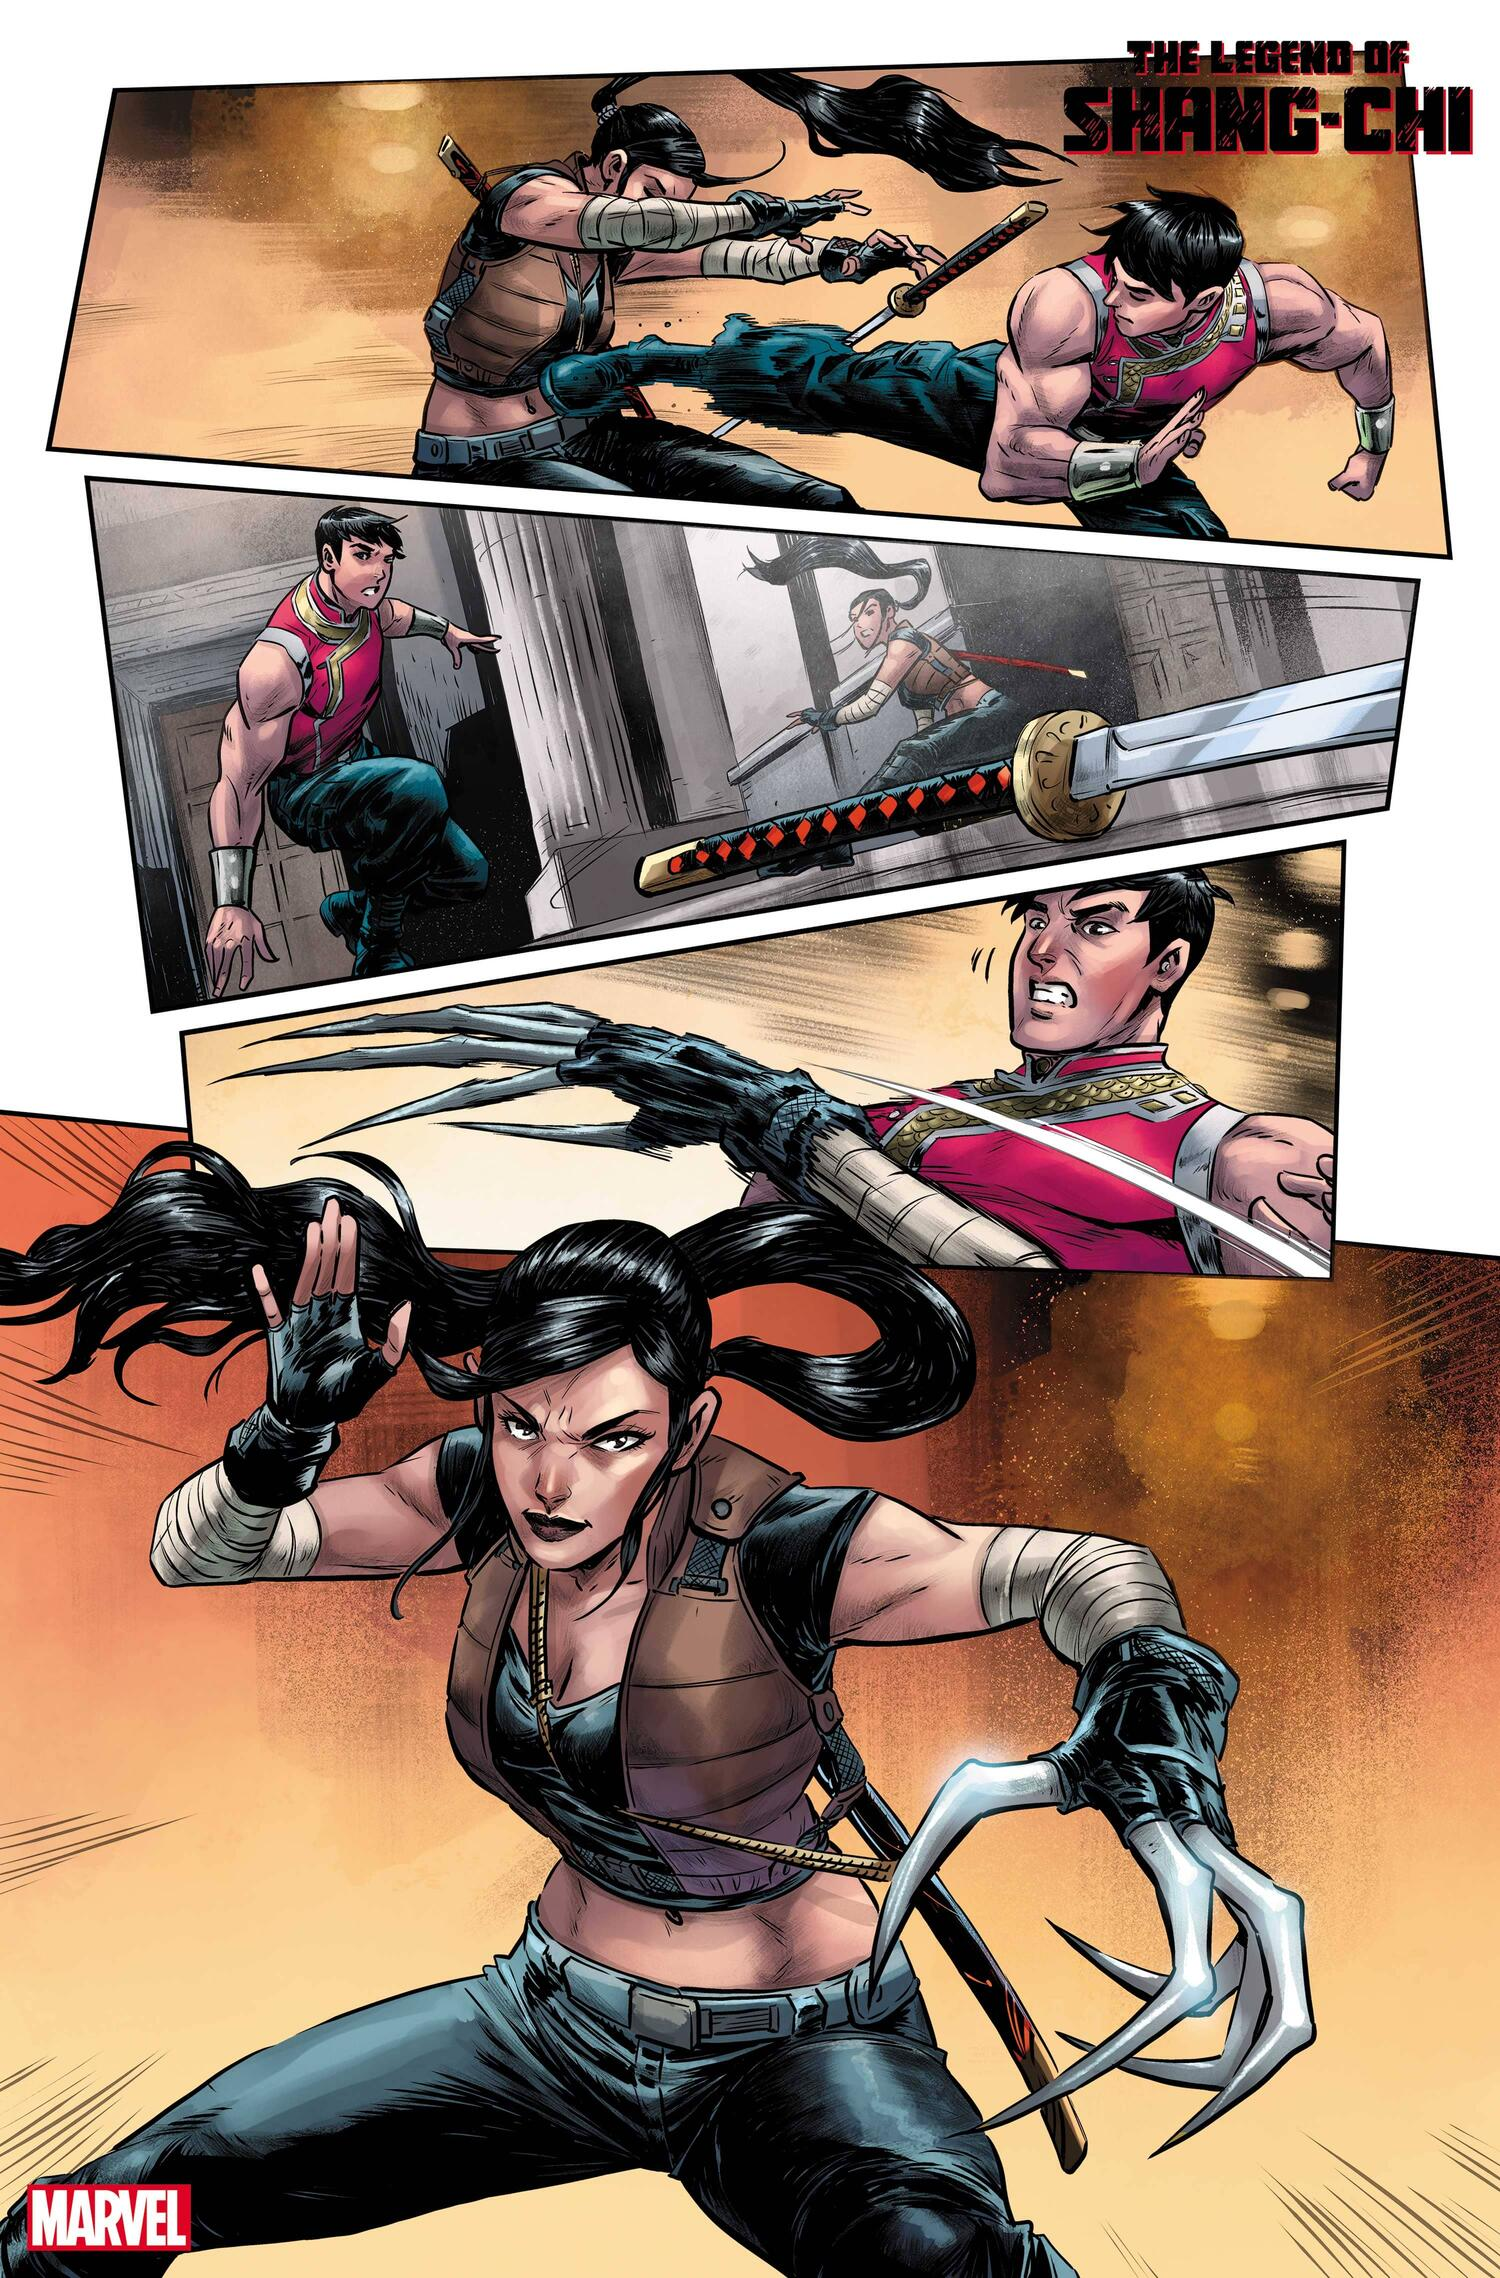 The Legend of Shang-Chi #1 Preview Page from Marvel.com